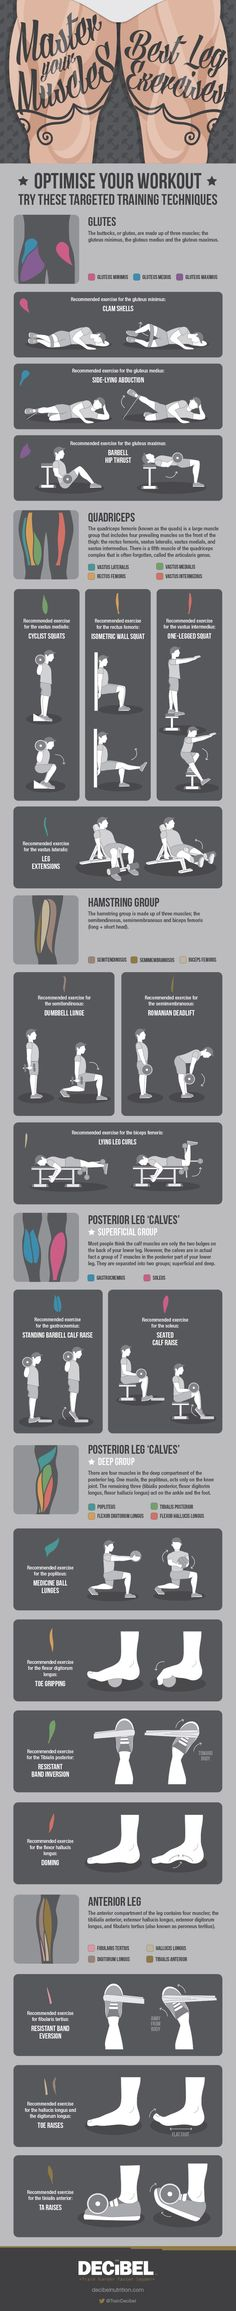 Best Leg Exercises Infographic